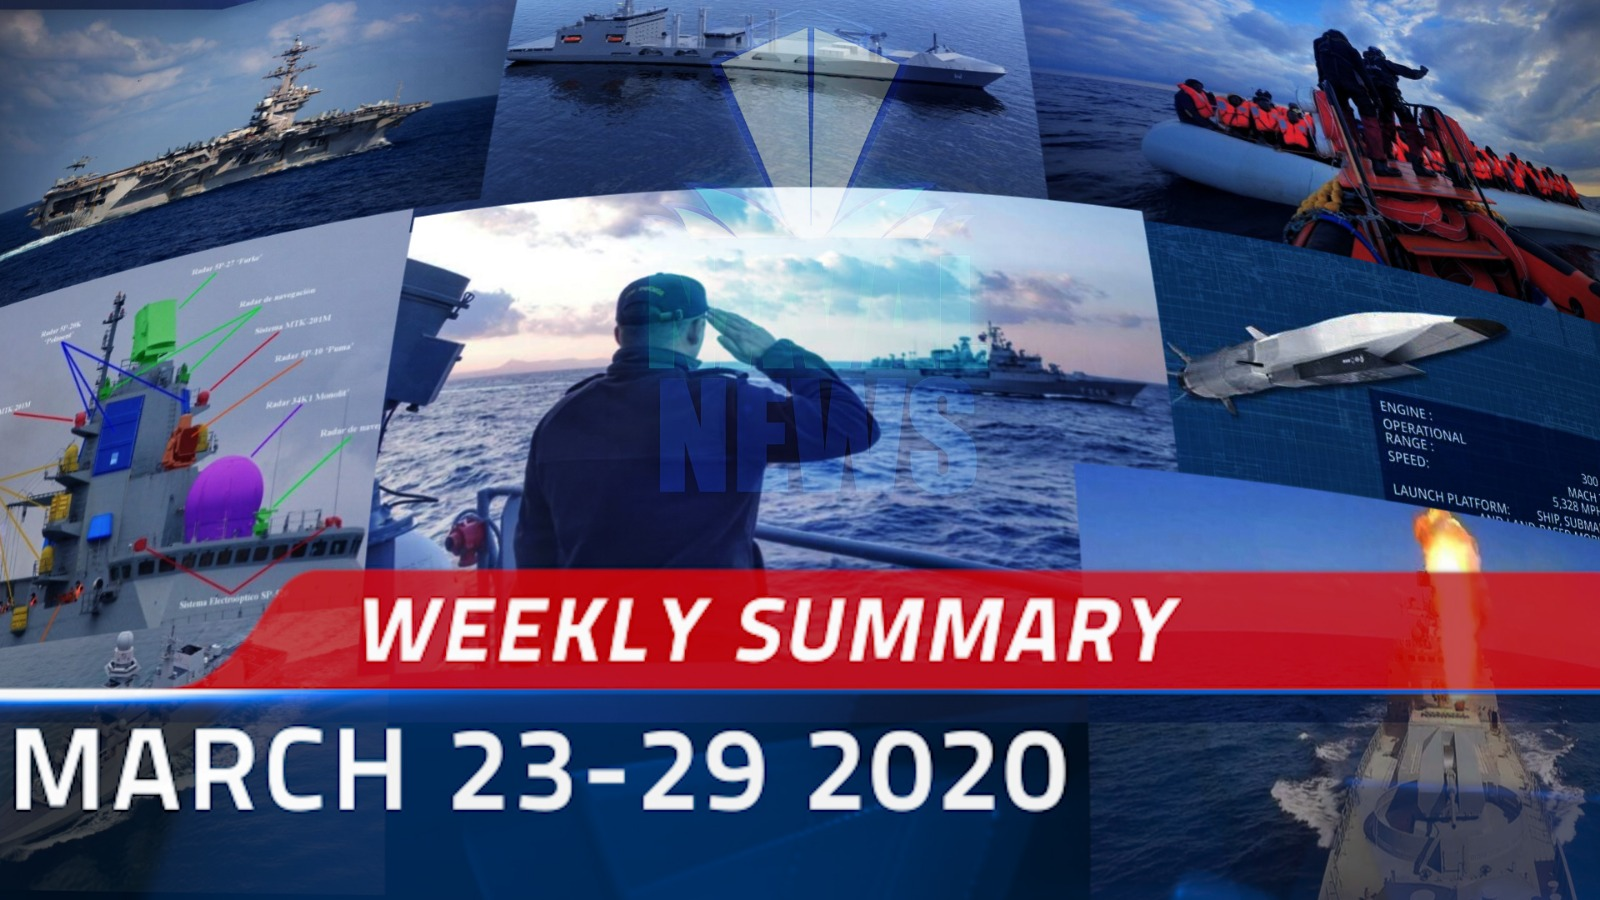 Weekly Summary for 23-29 March 2020